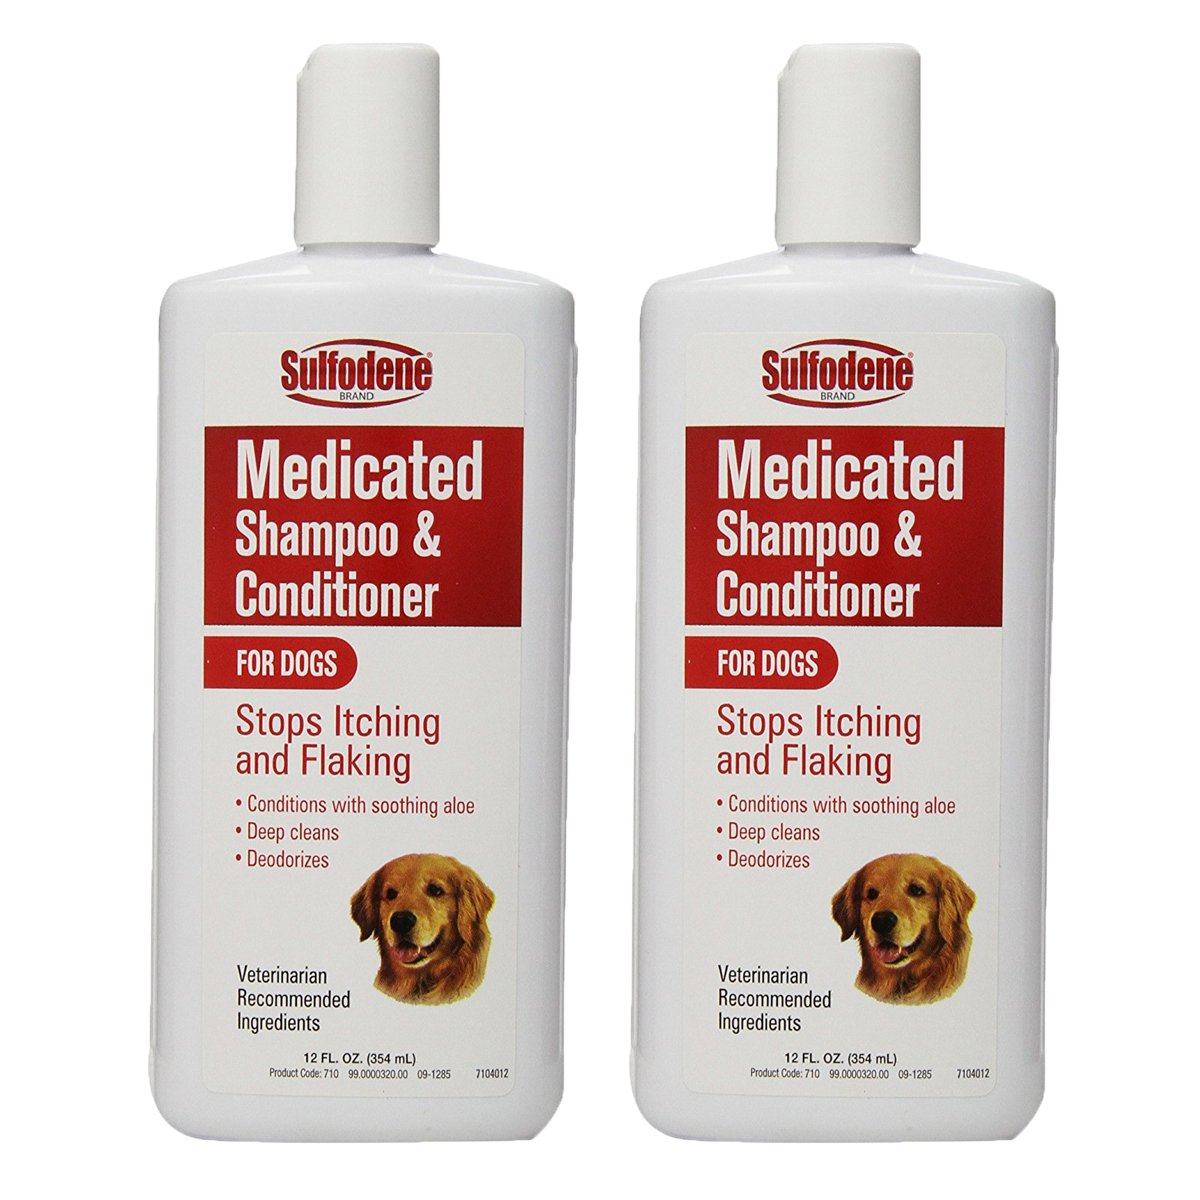 Sulfodene Medicated Shampoo & Conditioner for Dogs, White